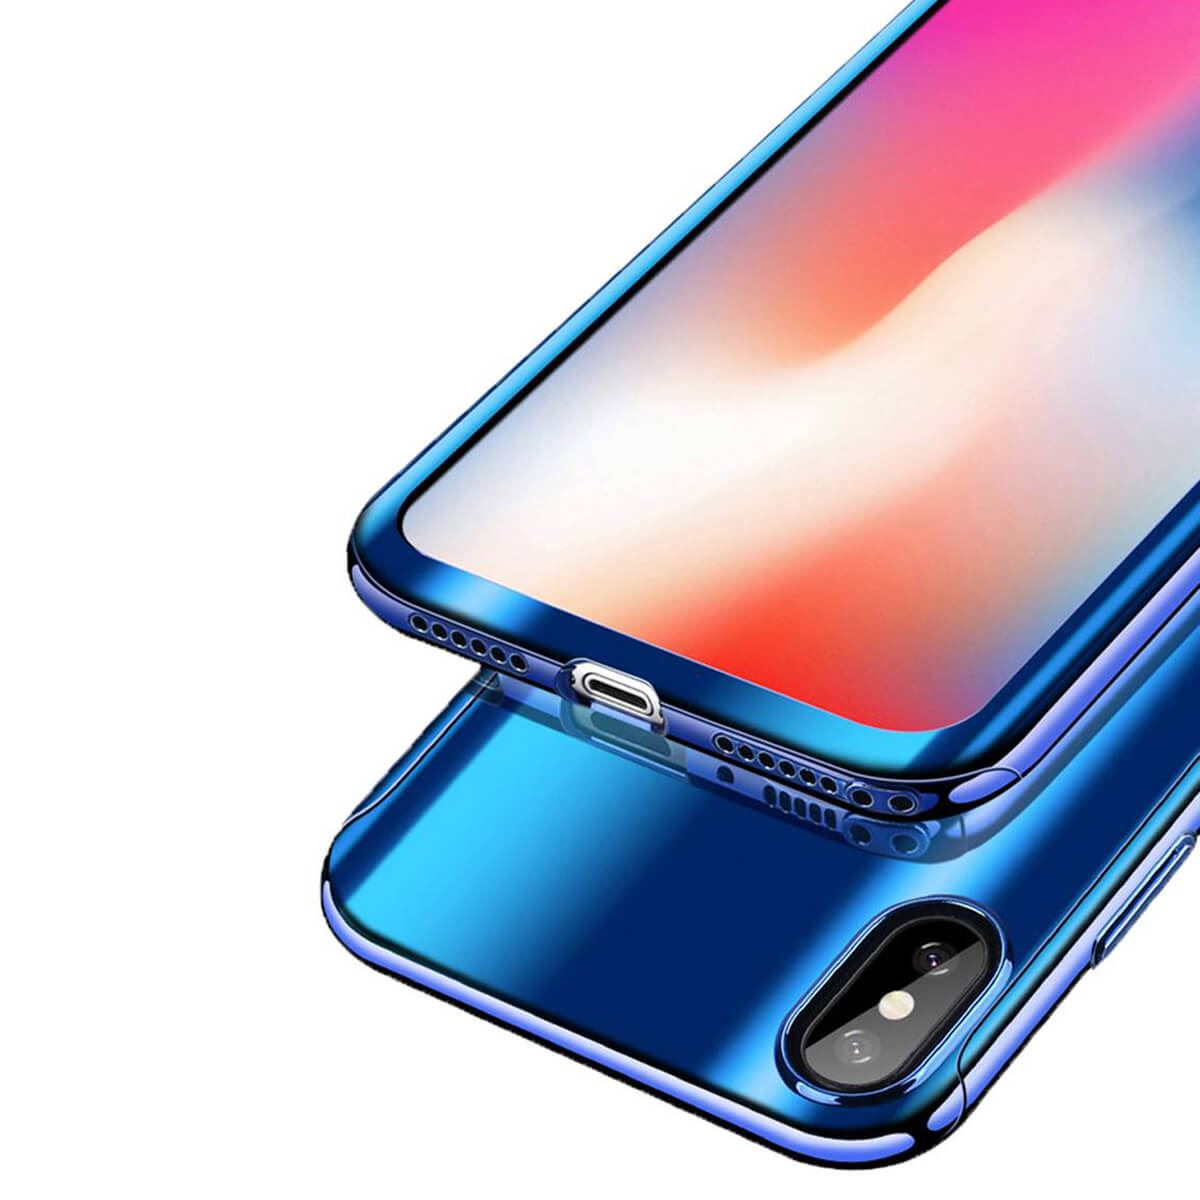 Tempered-Glass-Cover-For-iPhone-X-8-7-Plus-6s-5-Mirror-Hybrid-360-Hard-Thin-Case thumbnail 6